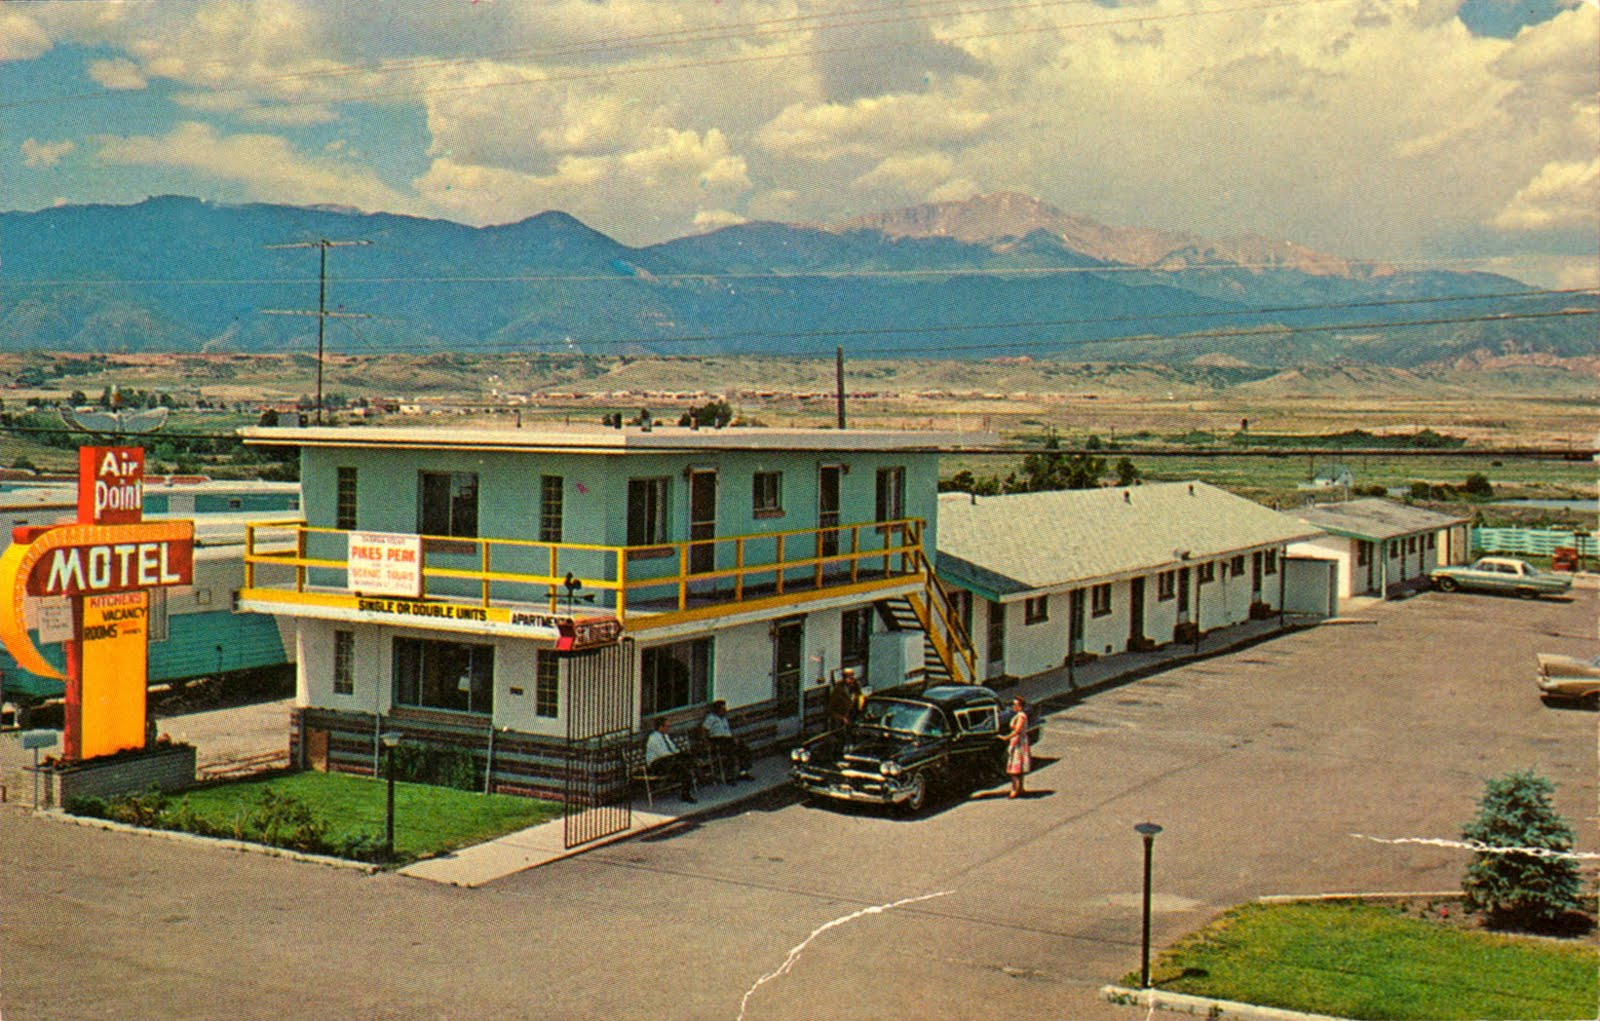 Air Point Motel - Colorado Springs, Colorado